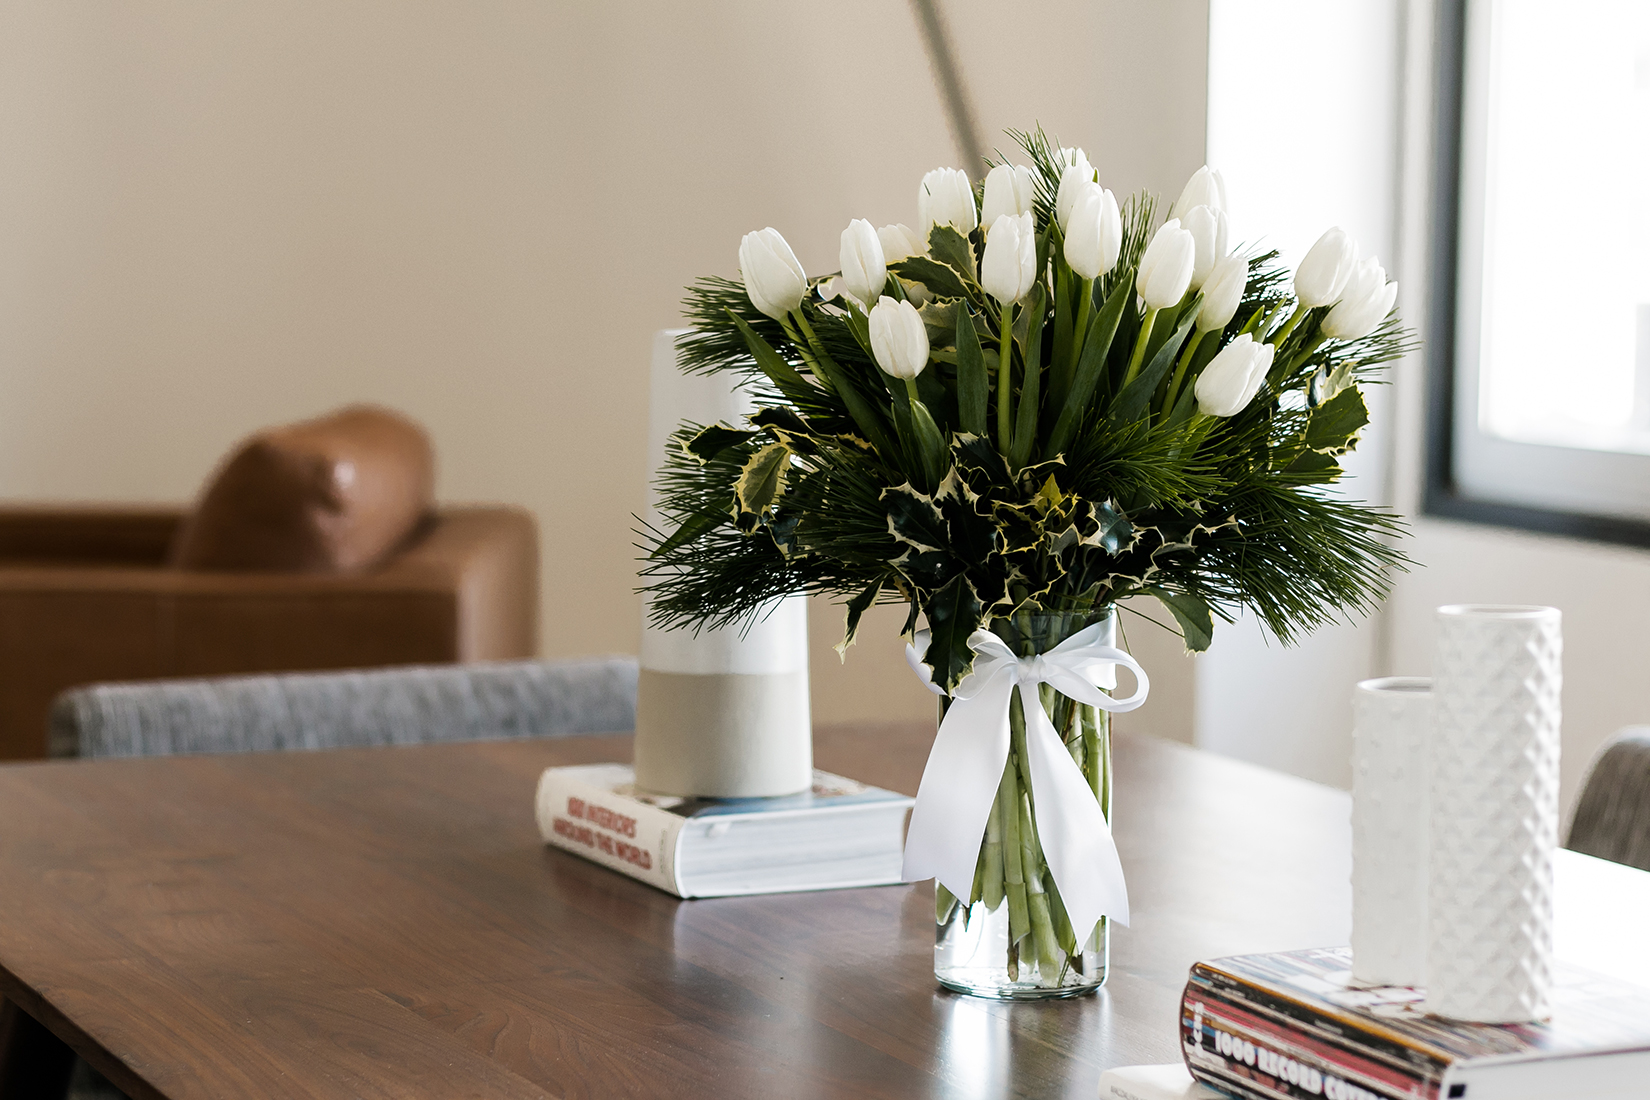 White tulips with pine accents in a clear vase with a white ribbon on a wooden table